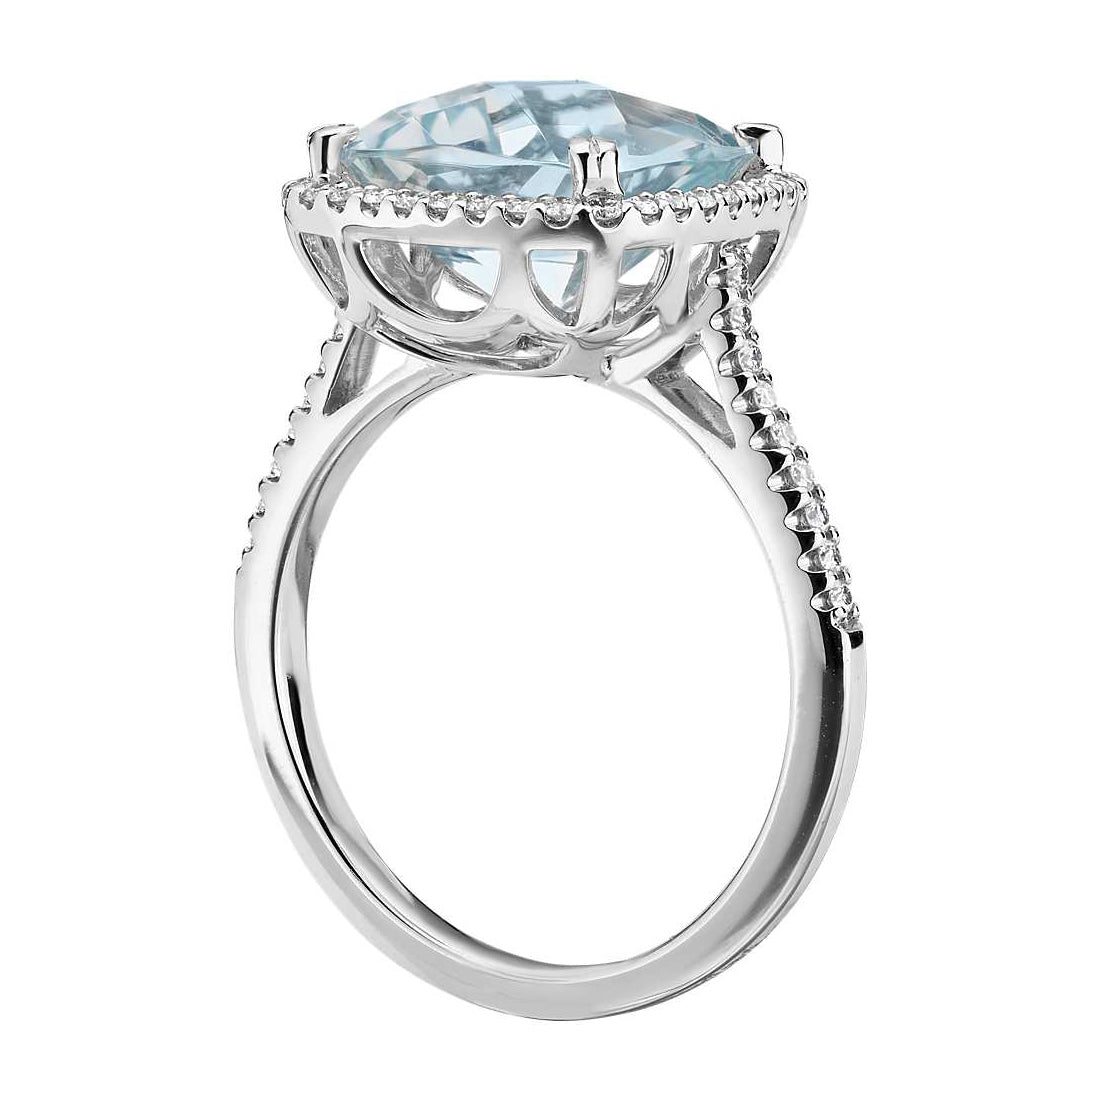 Cushion cut aquamarine and diamonds ring - 2